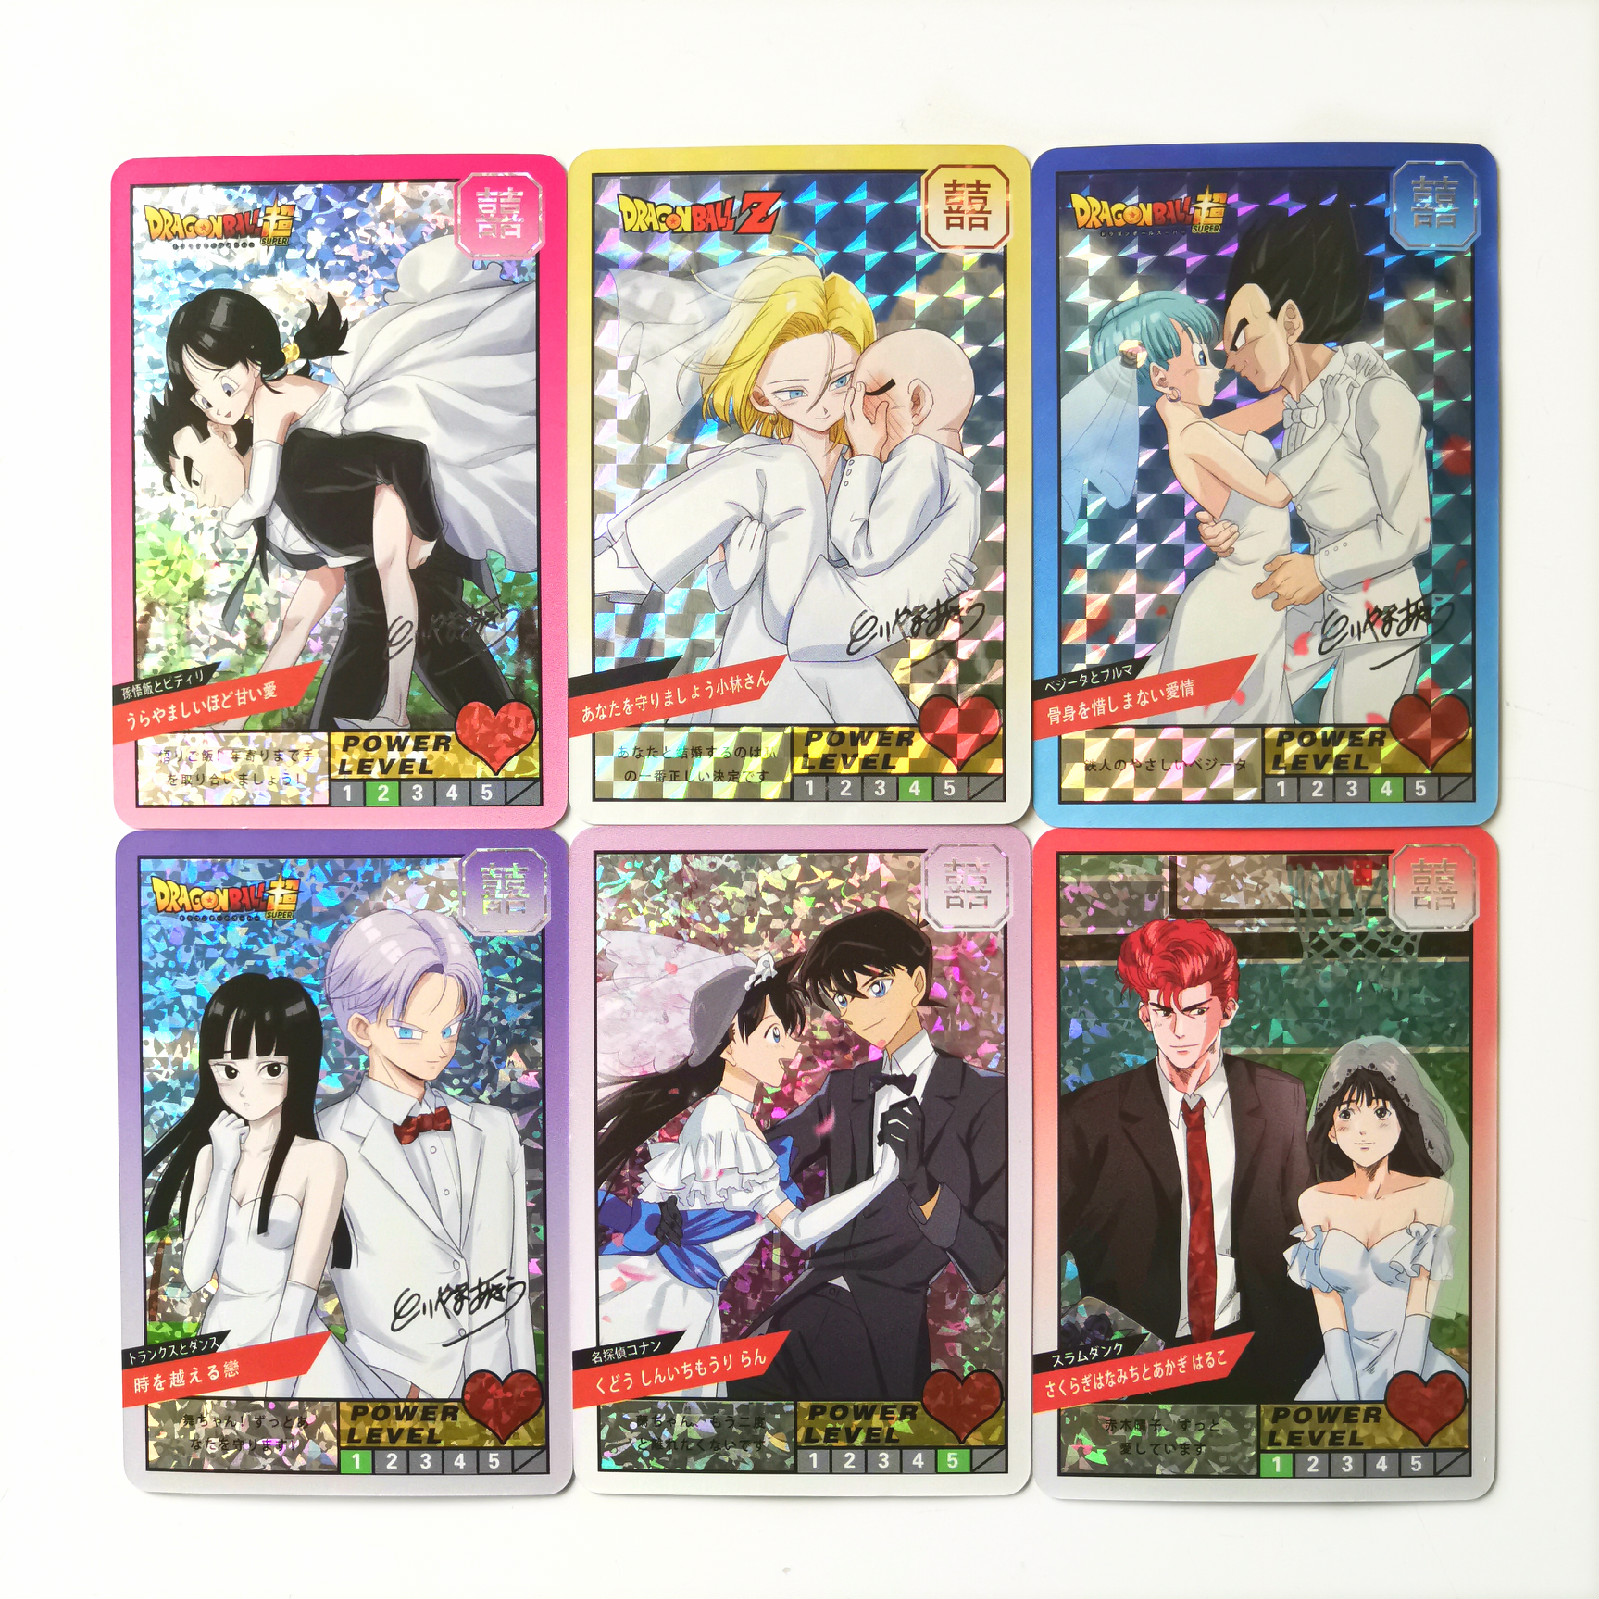 8 Styles Marry Super Dragon Ball Z Detective Conan SLAM DUNK Limited Special Heroes Battle Card Vegeta Game Collection Cards